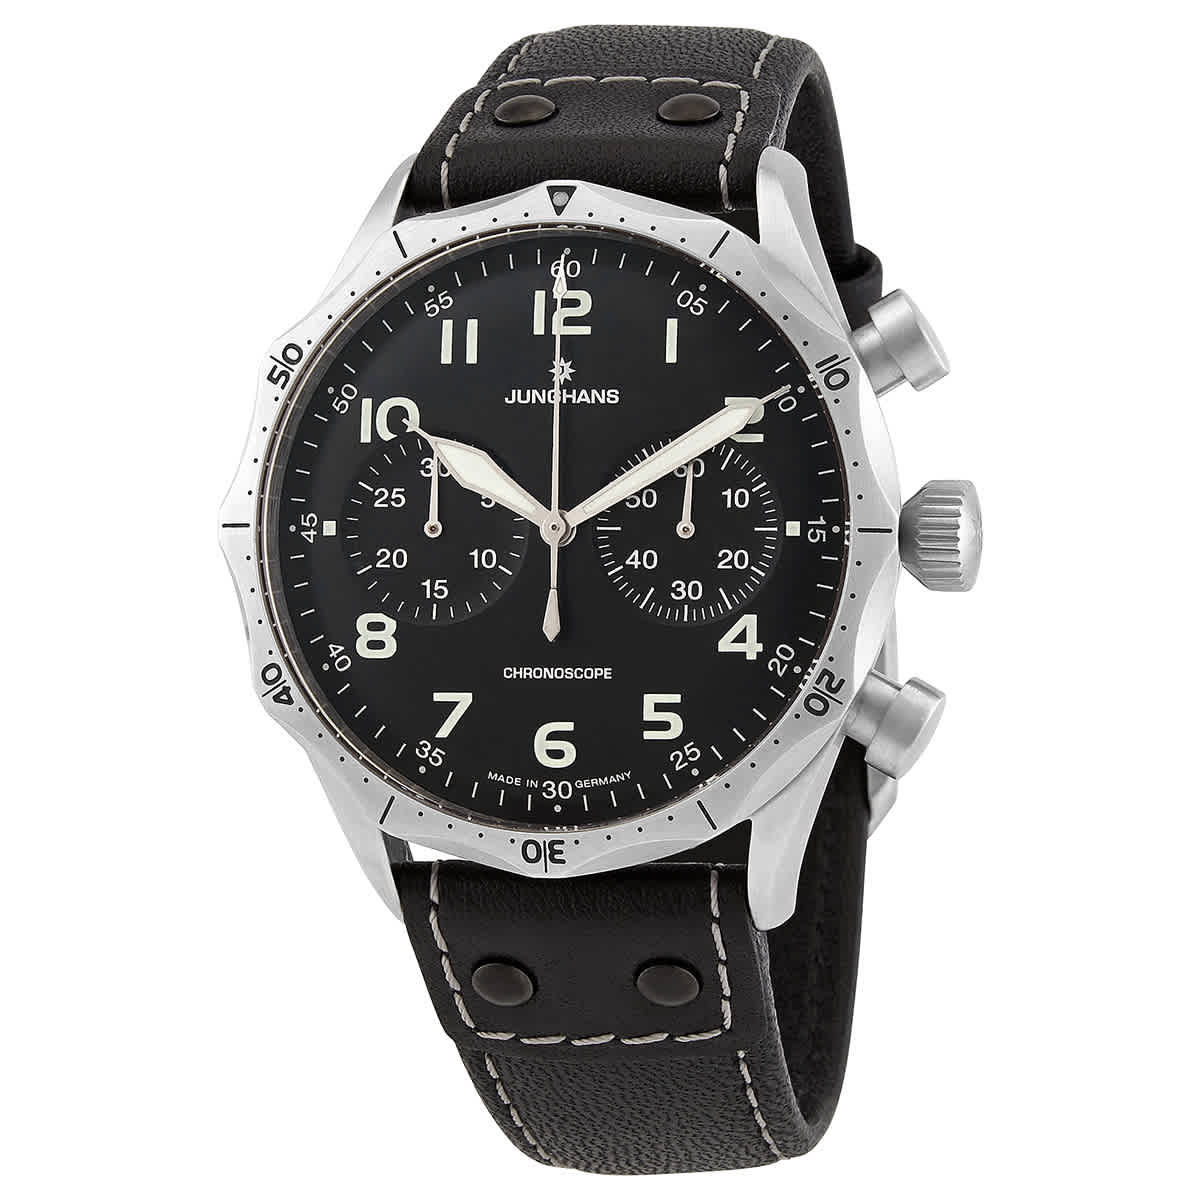 Junghans Meister Pilot Chronograph Automatic Black Dial Mens Watch 027/3590.00 In Black,silver Tone